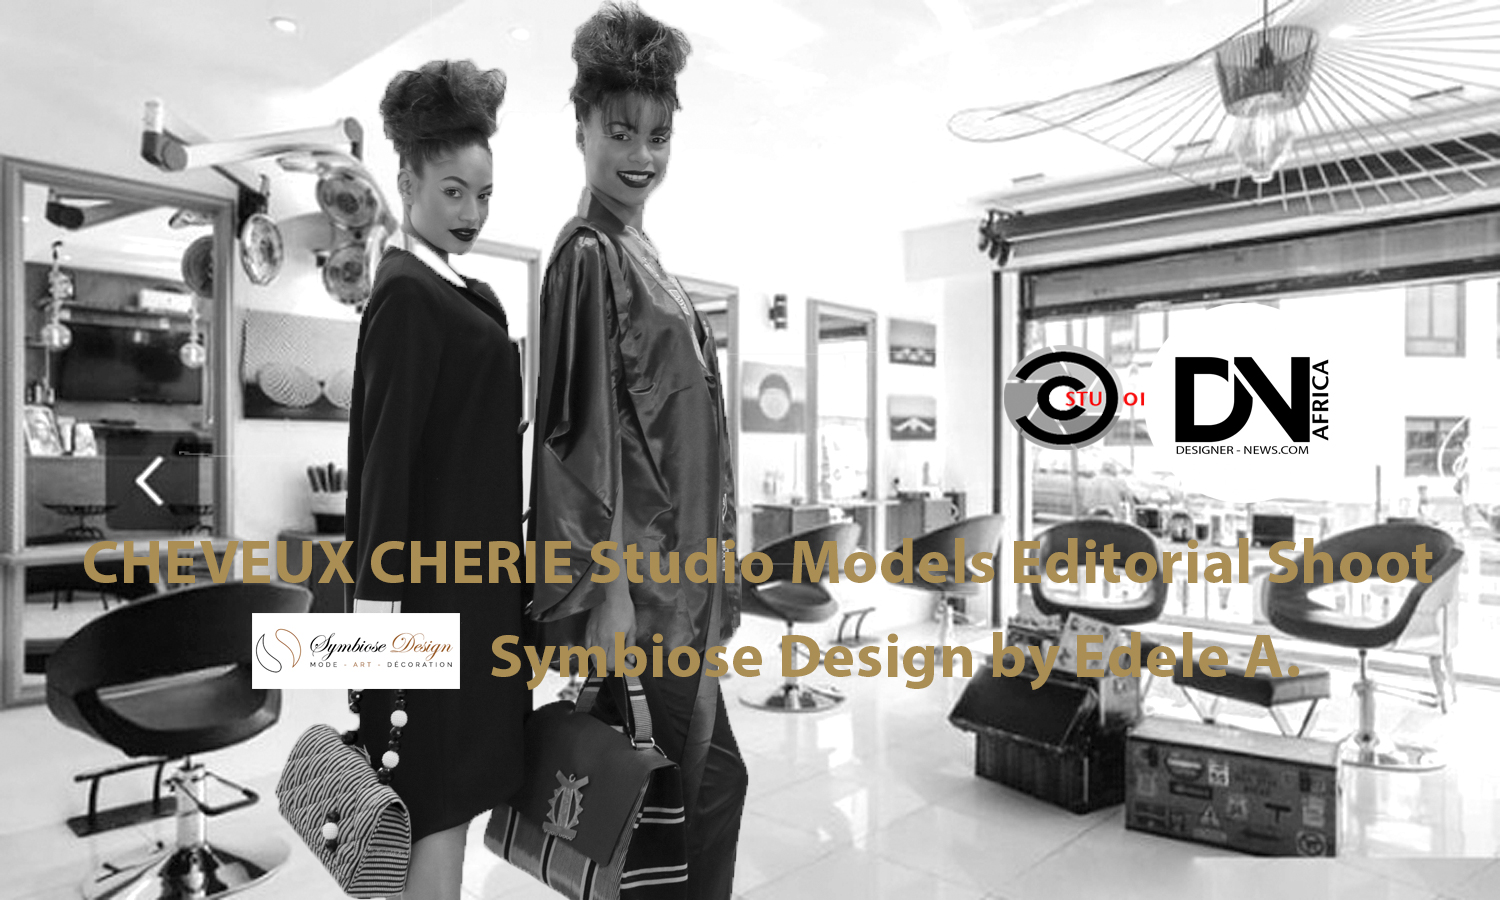 AFRICAN FASHION STYLE MAGAZINE - SYMBIOSE DESIGN SS20 by Edele A - Model Nora & Malou - Editorial Shoot - Photographer DAN NGU - Media Partner DN AFRICA - STUDIO 24 NIGERIA - STUDIO 24 INTERNATIONAL - Ifeanyi Christopher Oputa MD AND CEO OF COLVI LIMITED AND STUDIO 24 - CHEVEUX CHERIE and CHEVEUX CHERIE STUDIO BY MARIEME DUBOZ- Fashion Editor Nahomie NOOR COULIBALY